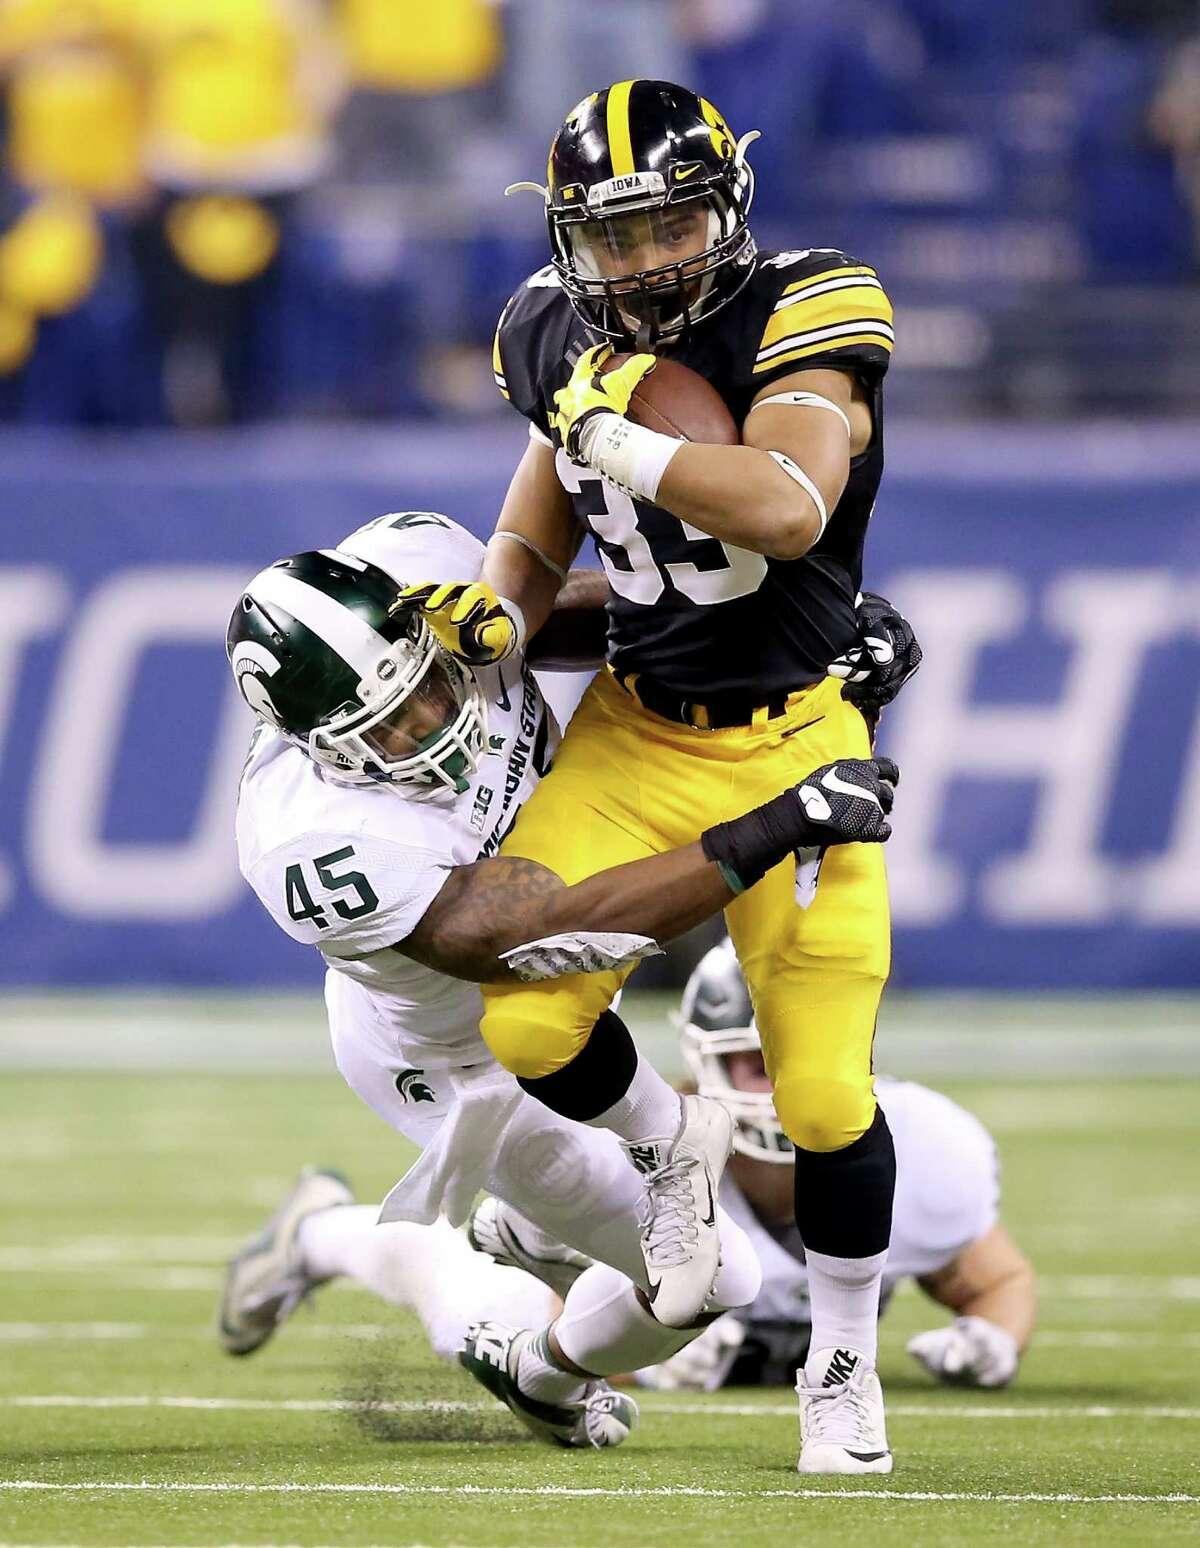 INDIANAPOLIS, IN - DECEMBER 05: Darien Harris #45 of the Michigan State Spartans brings down Jordan Canzeri #33 of the Iowa Hawkeyes in the Big Ten Championship at Lucas Oil Stadium on December 5, 2015 in Indianapolis, Indiana. (Photo by Andy Lyons/Getty Images) ORG XMIT: 587174801